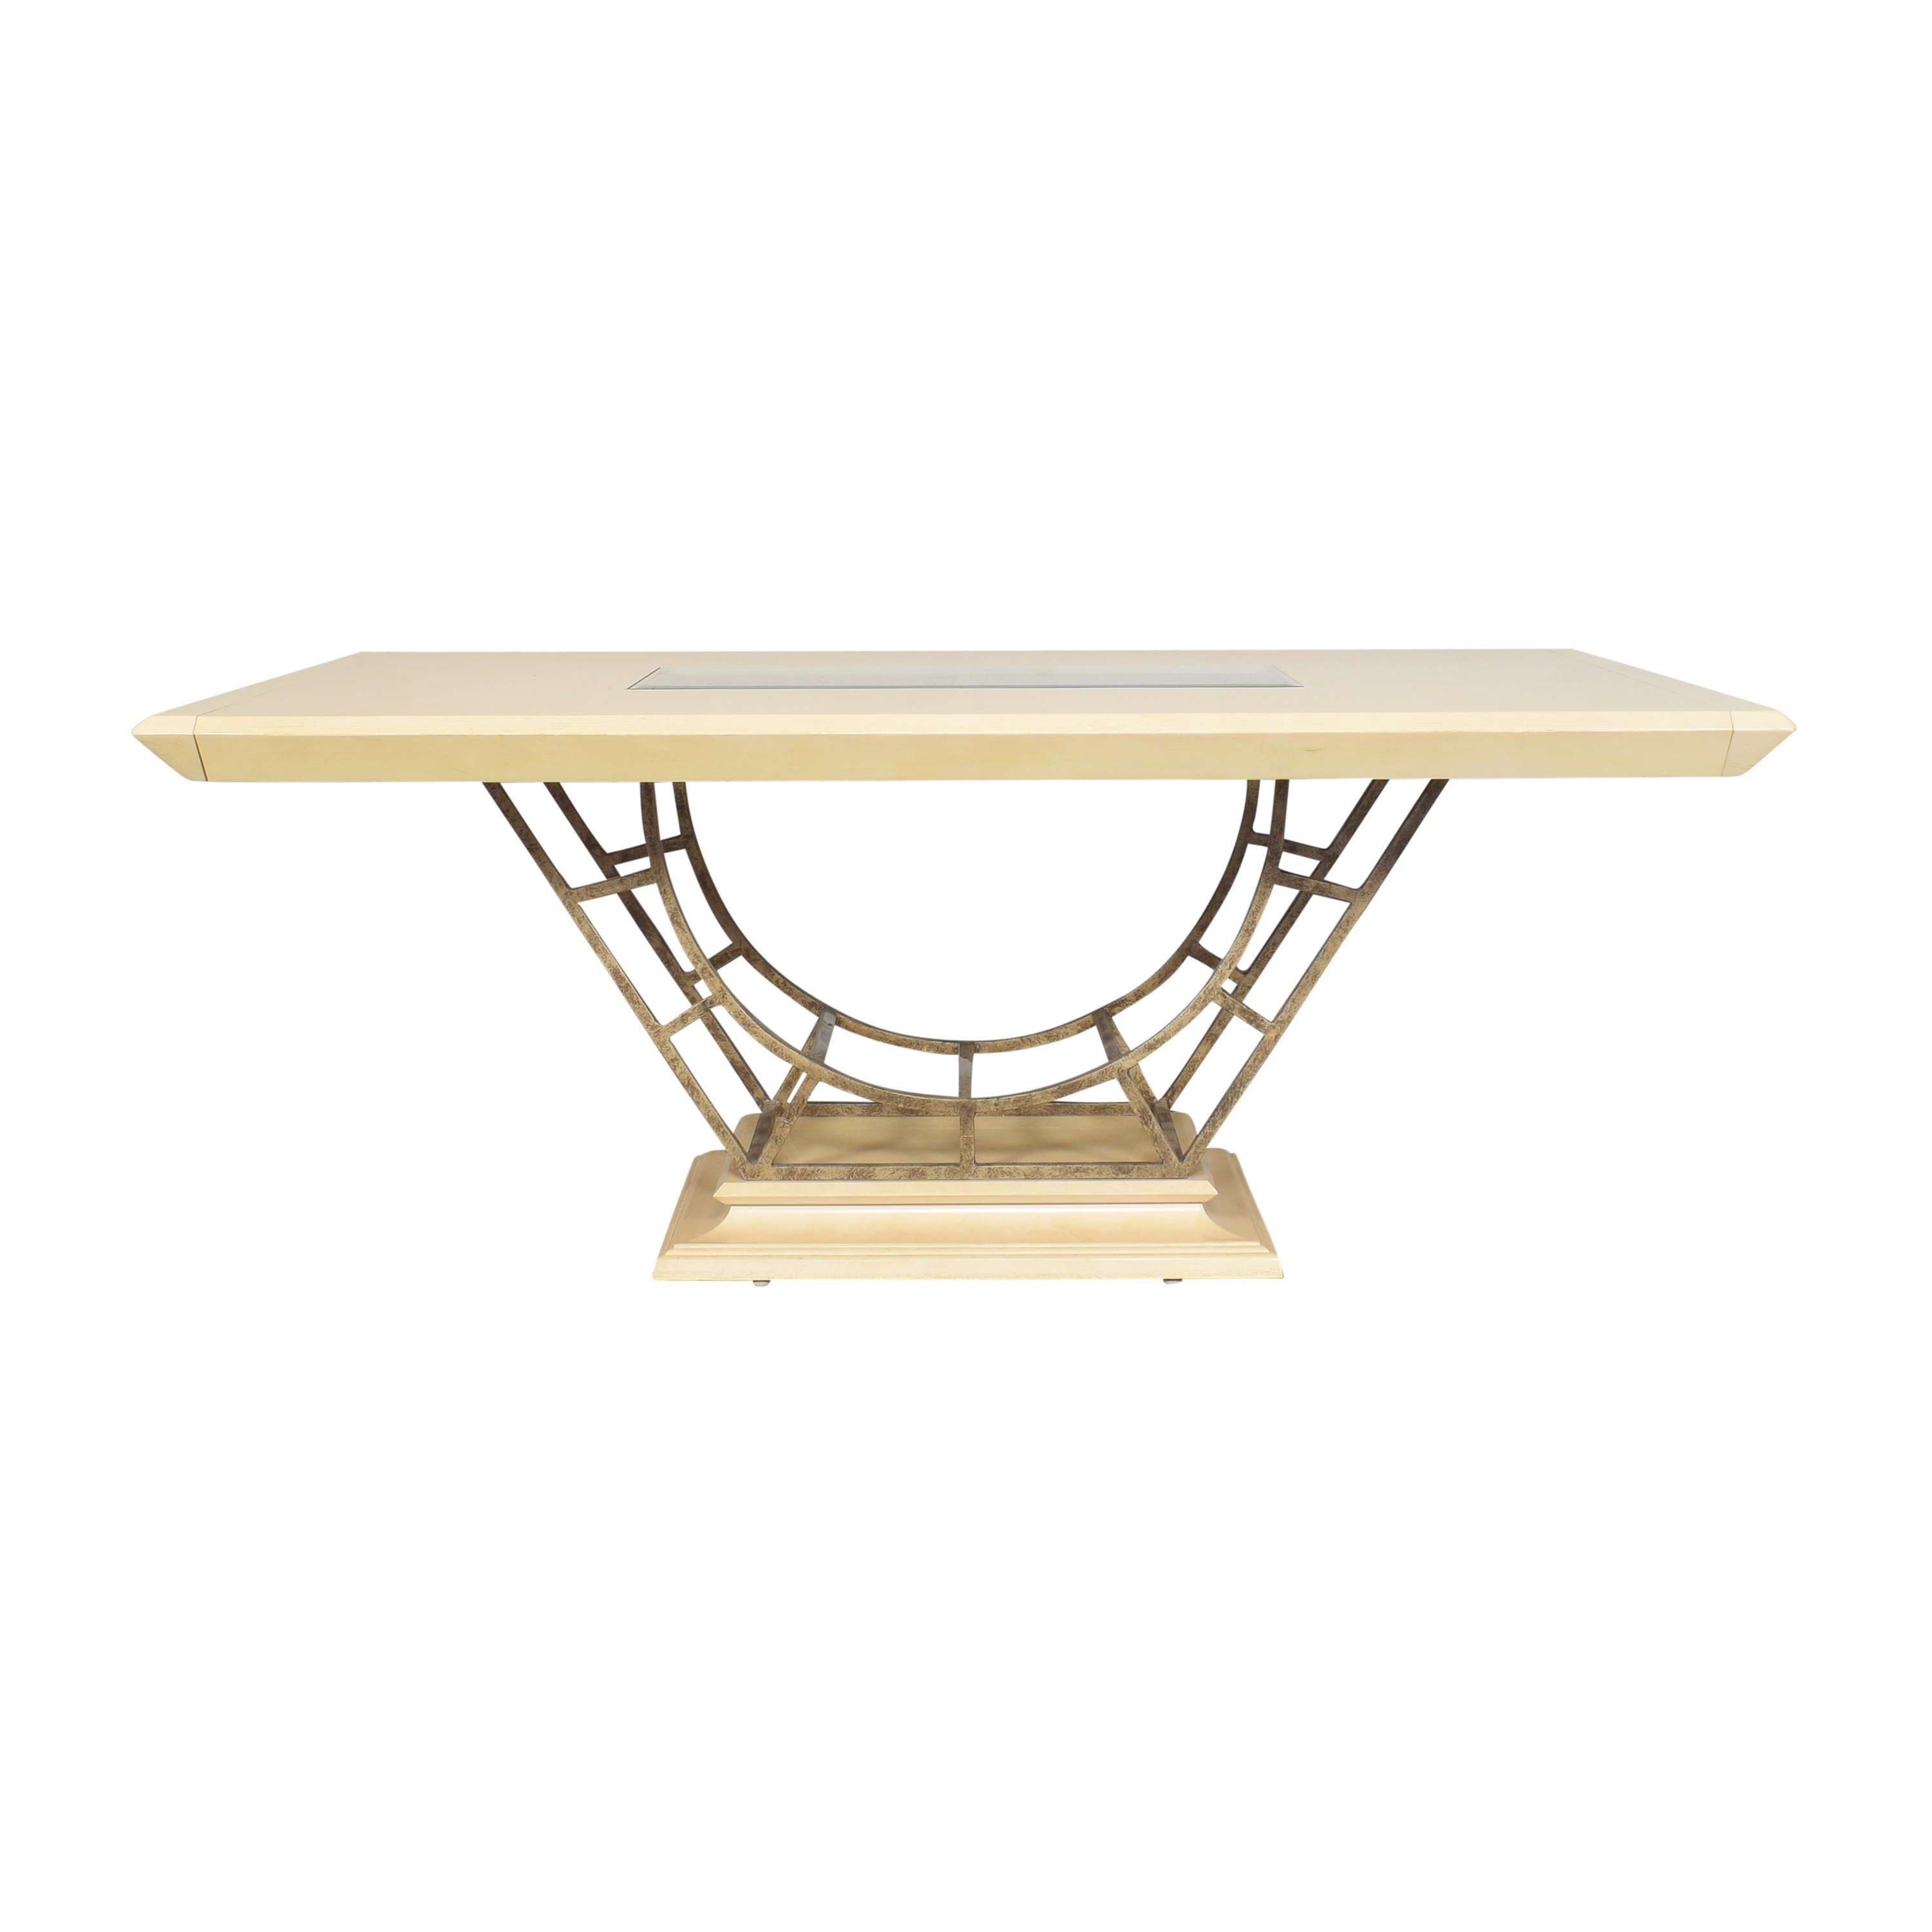 Century Furniture Century Furniture Expandable Dining Table on sale